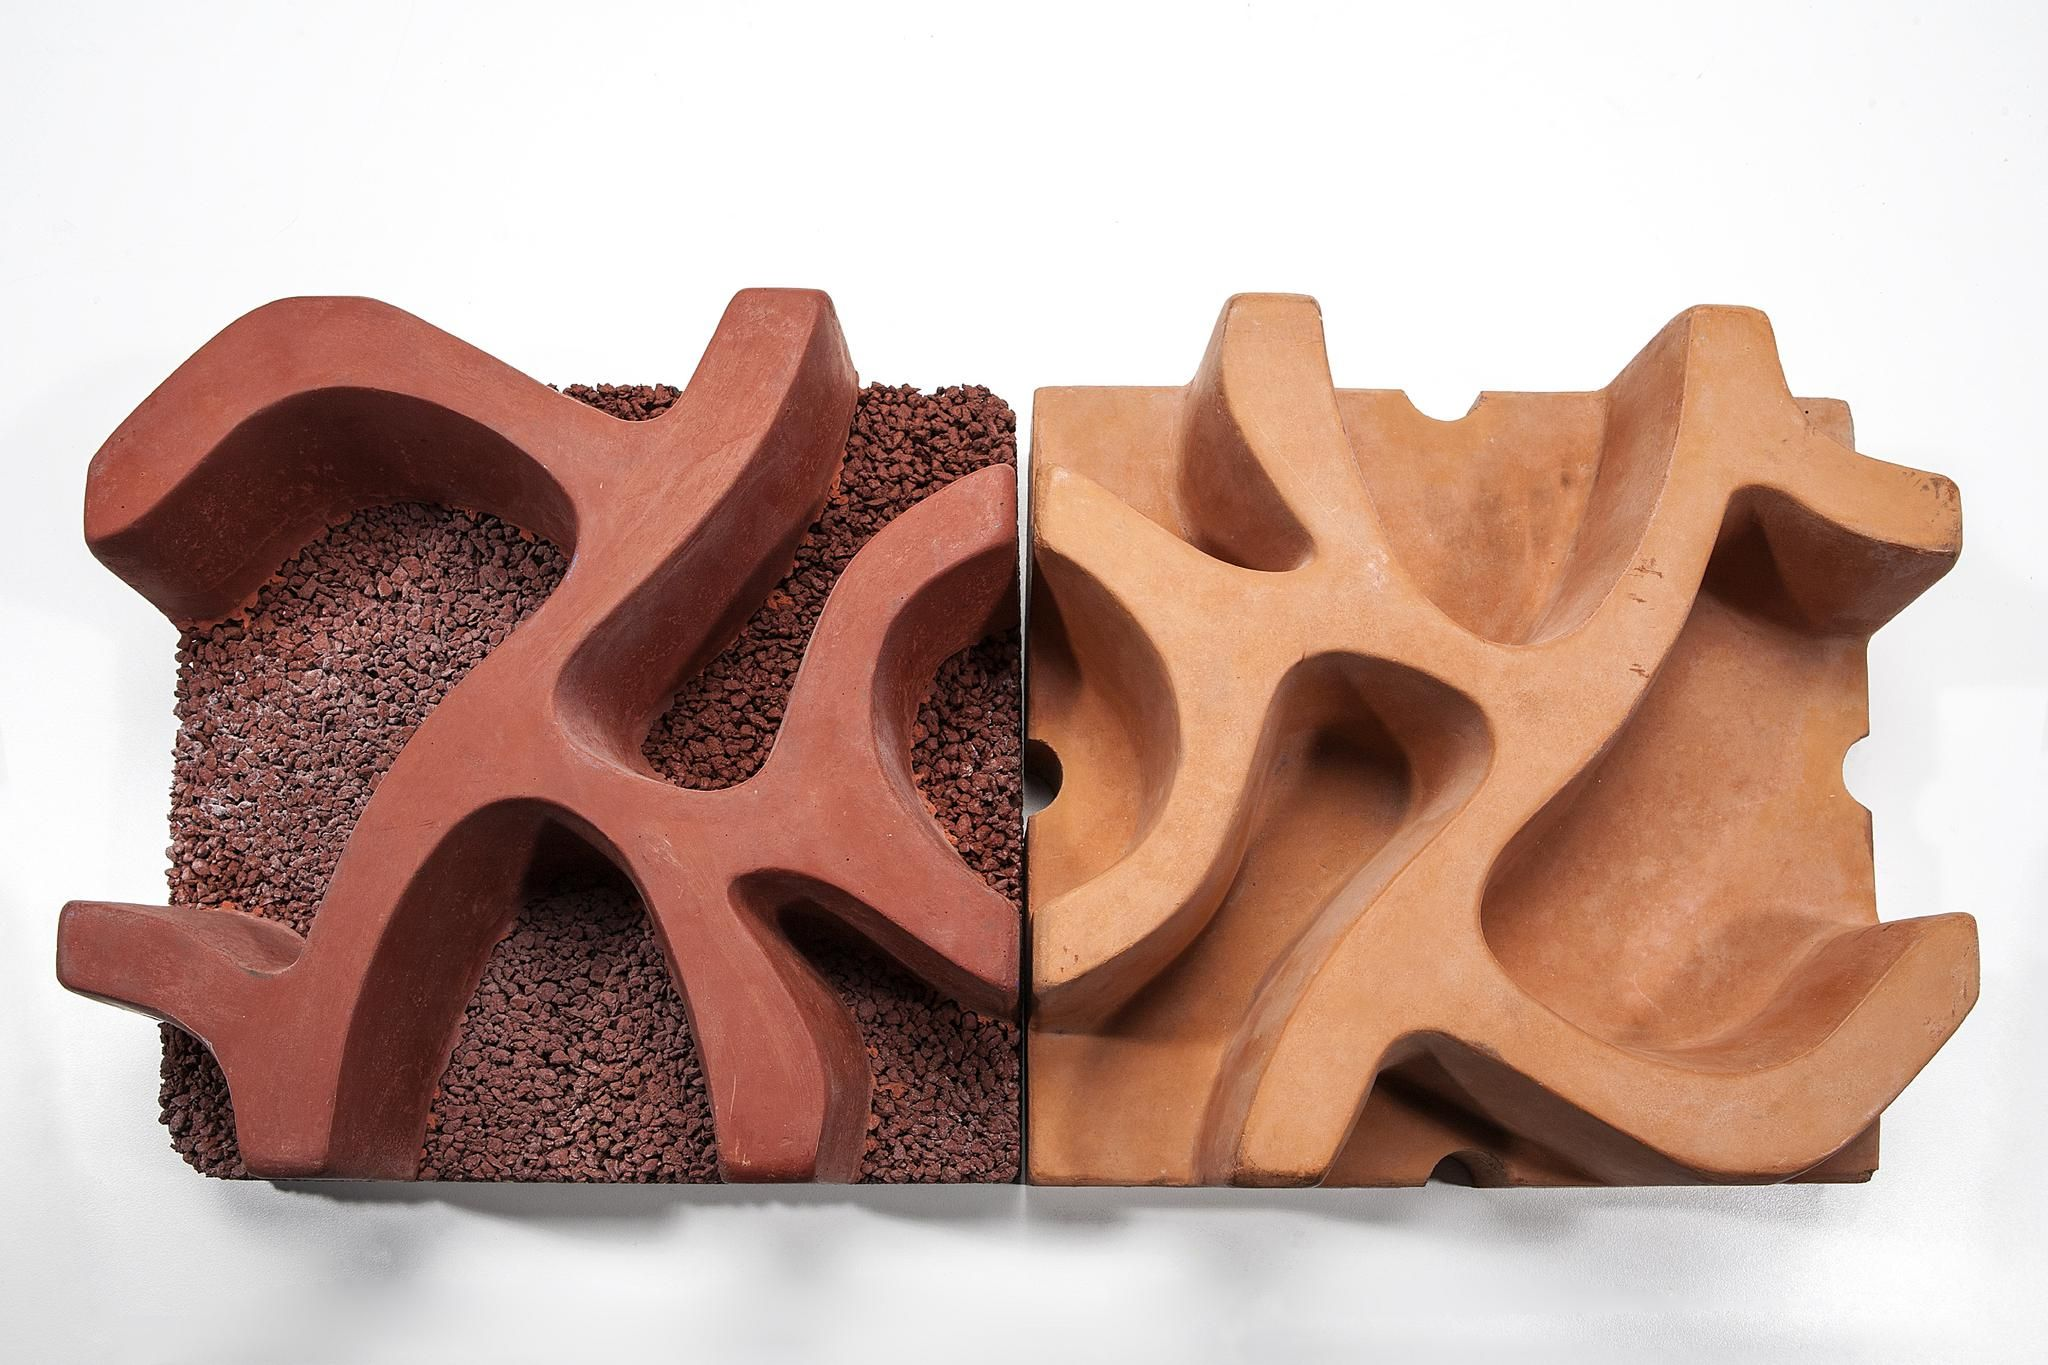 MaterialDistrict present innovative hard surfaces at the show